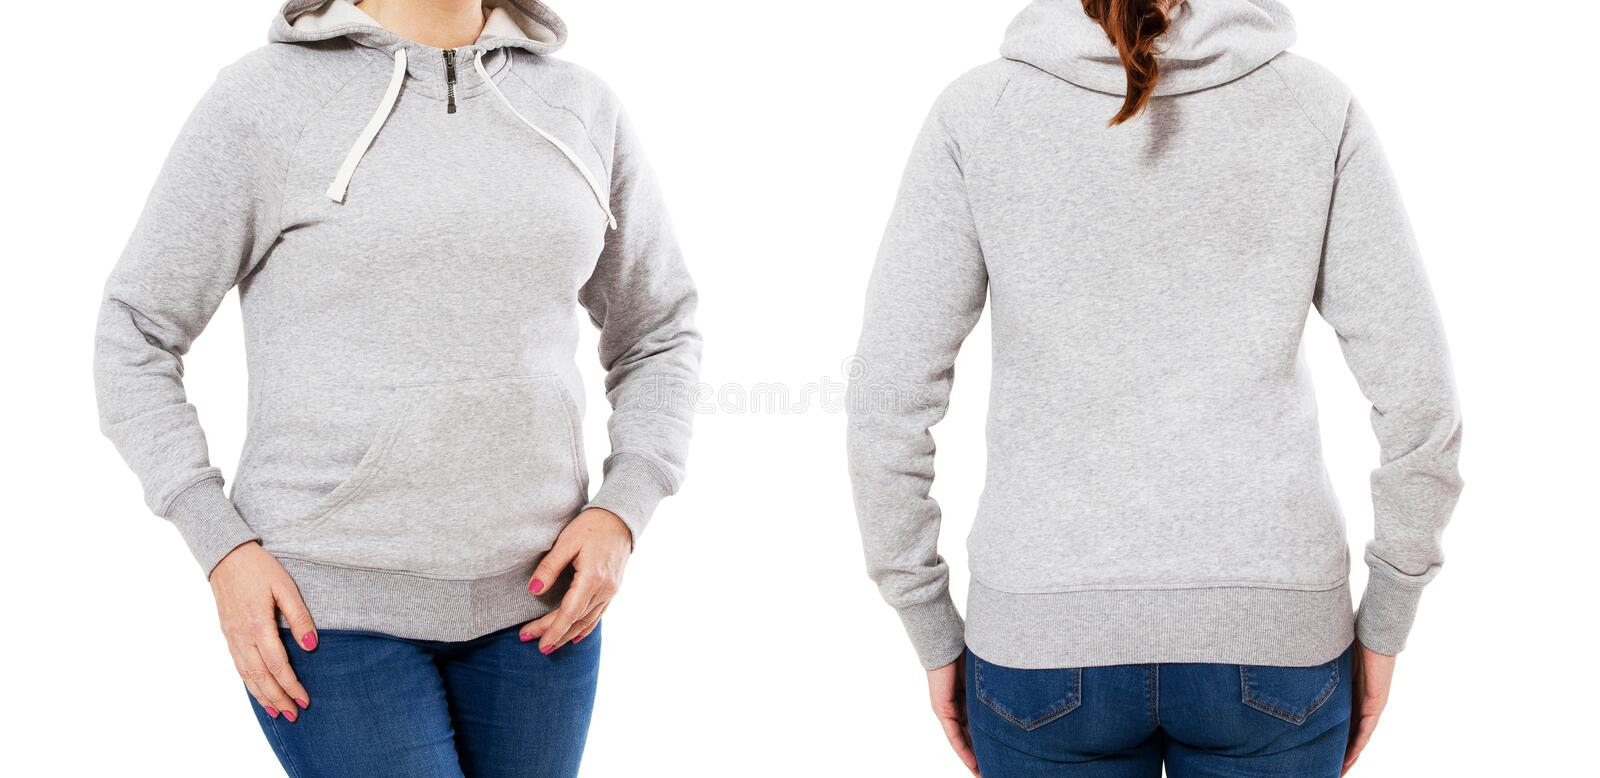 Hood set girl woman posing in empty hoodie mock up isolated over white background royalty free stock photos